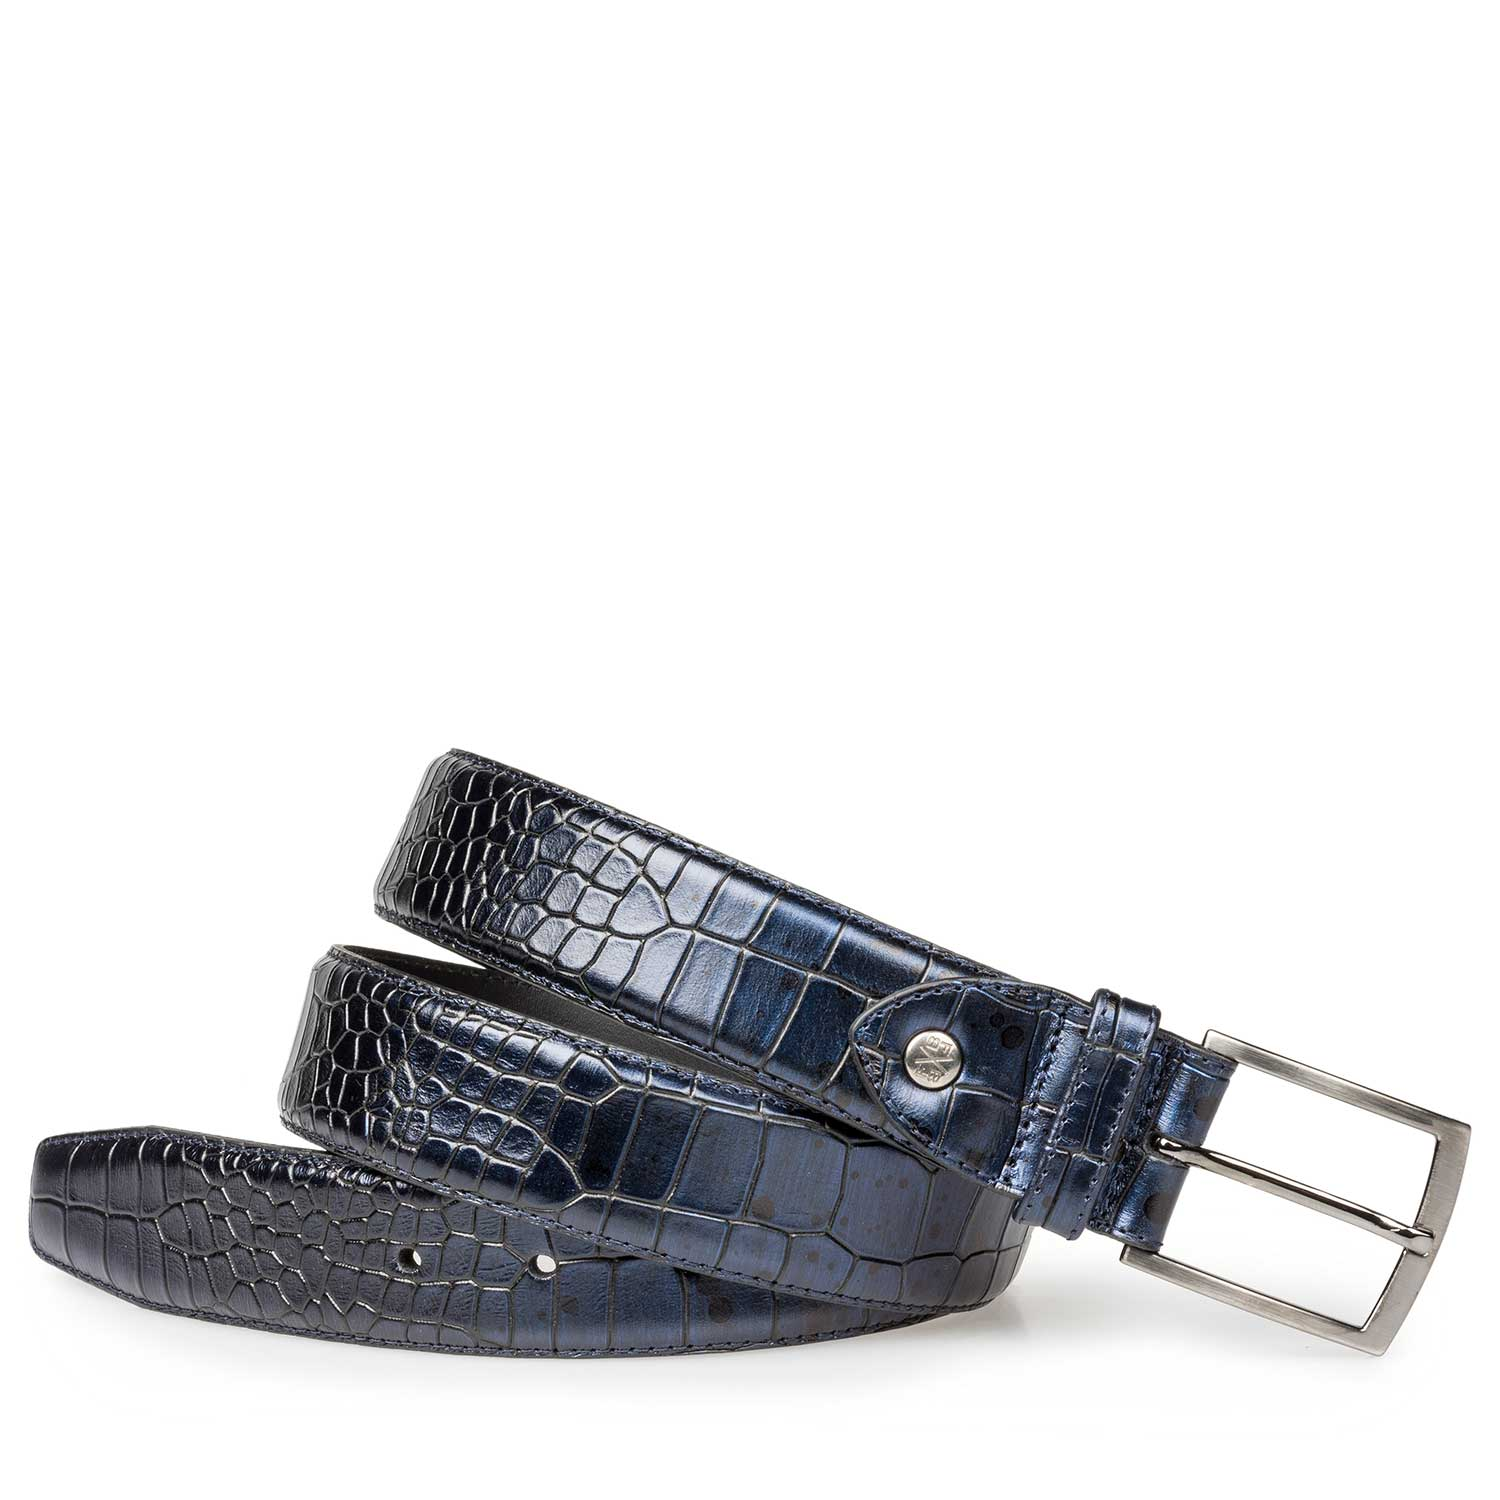 75190/11 - Blue calf's leather belt with croco print